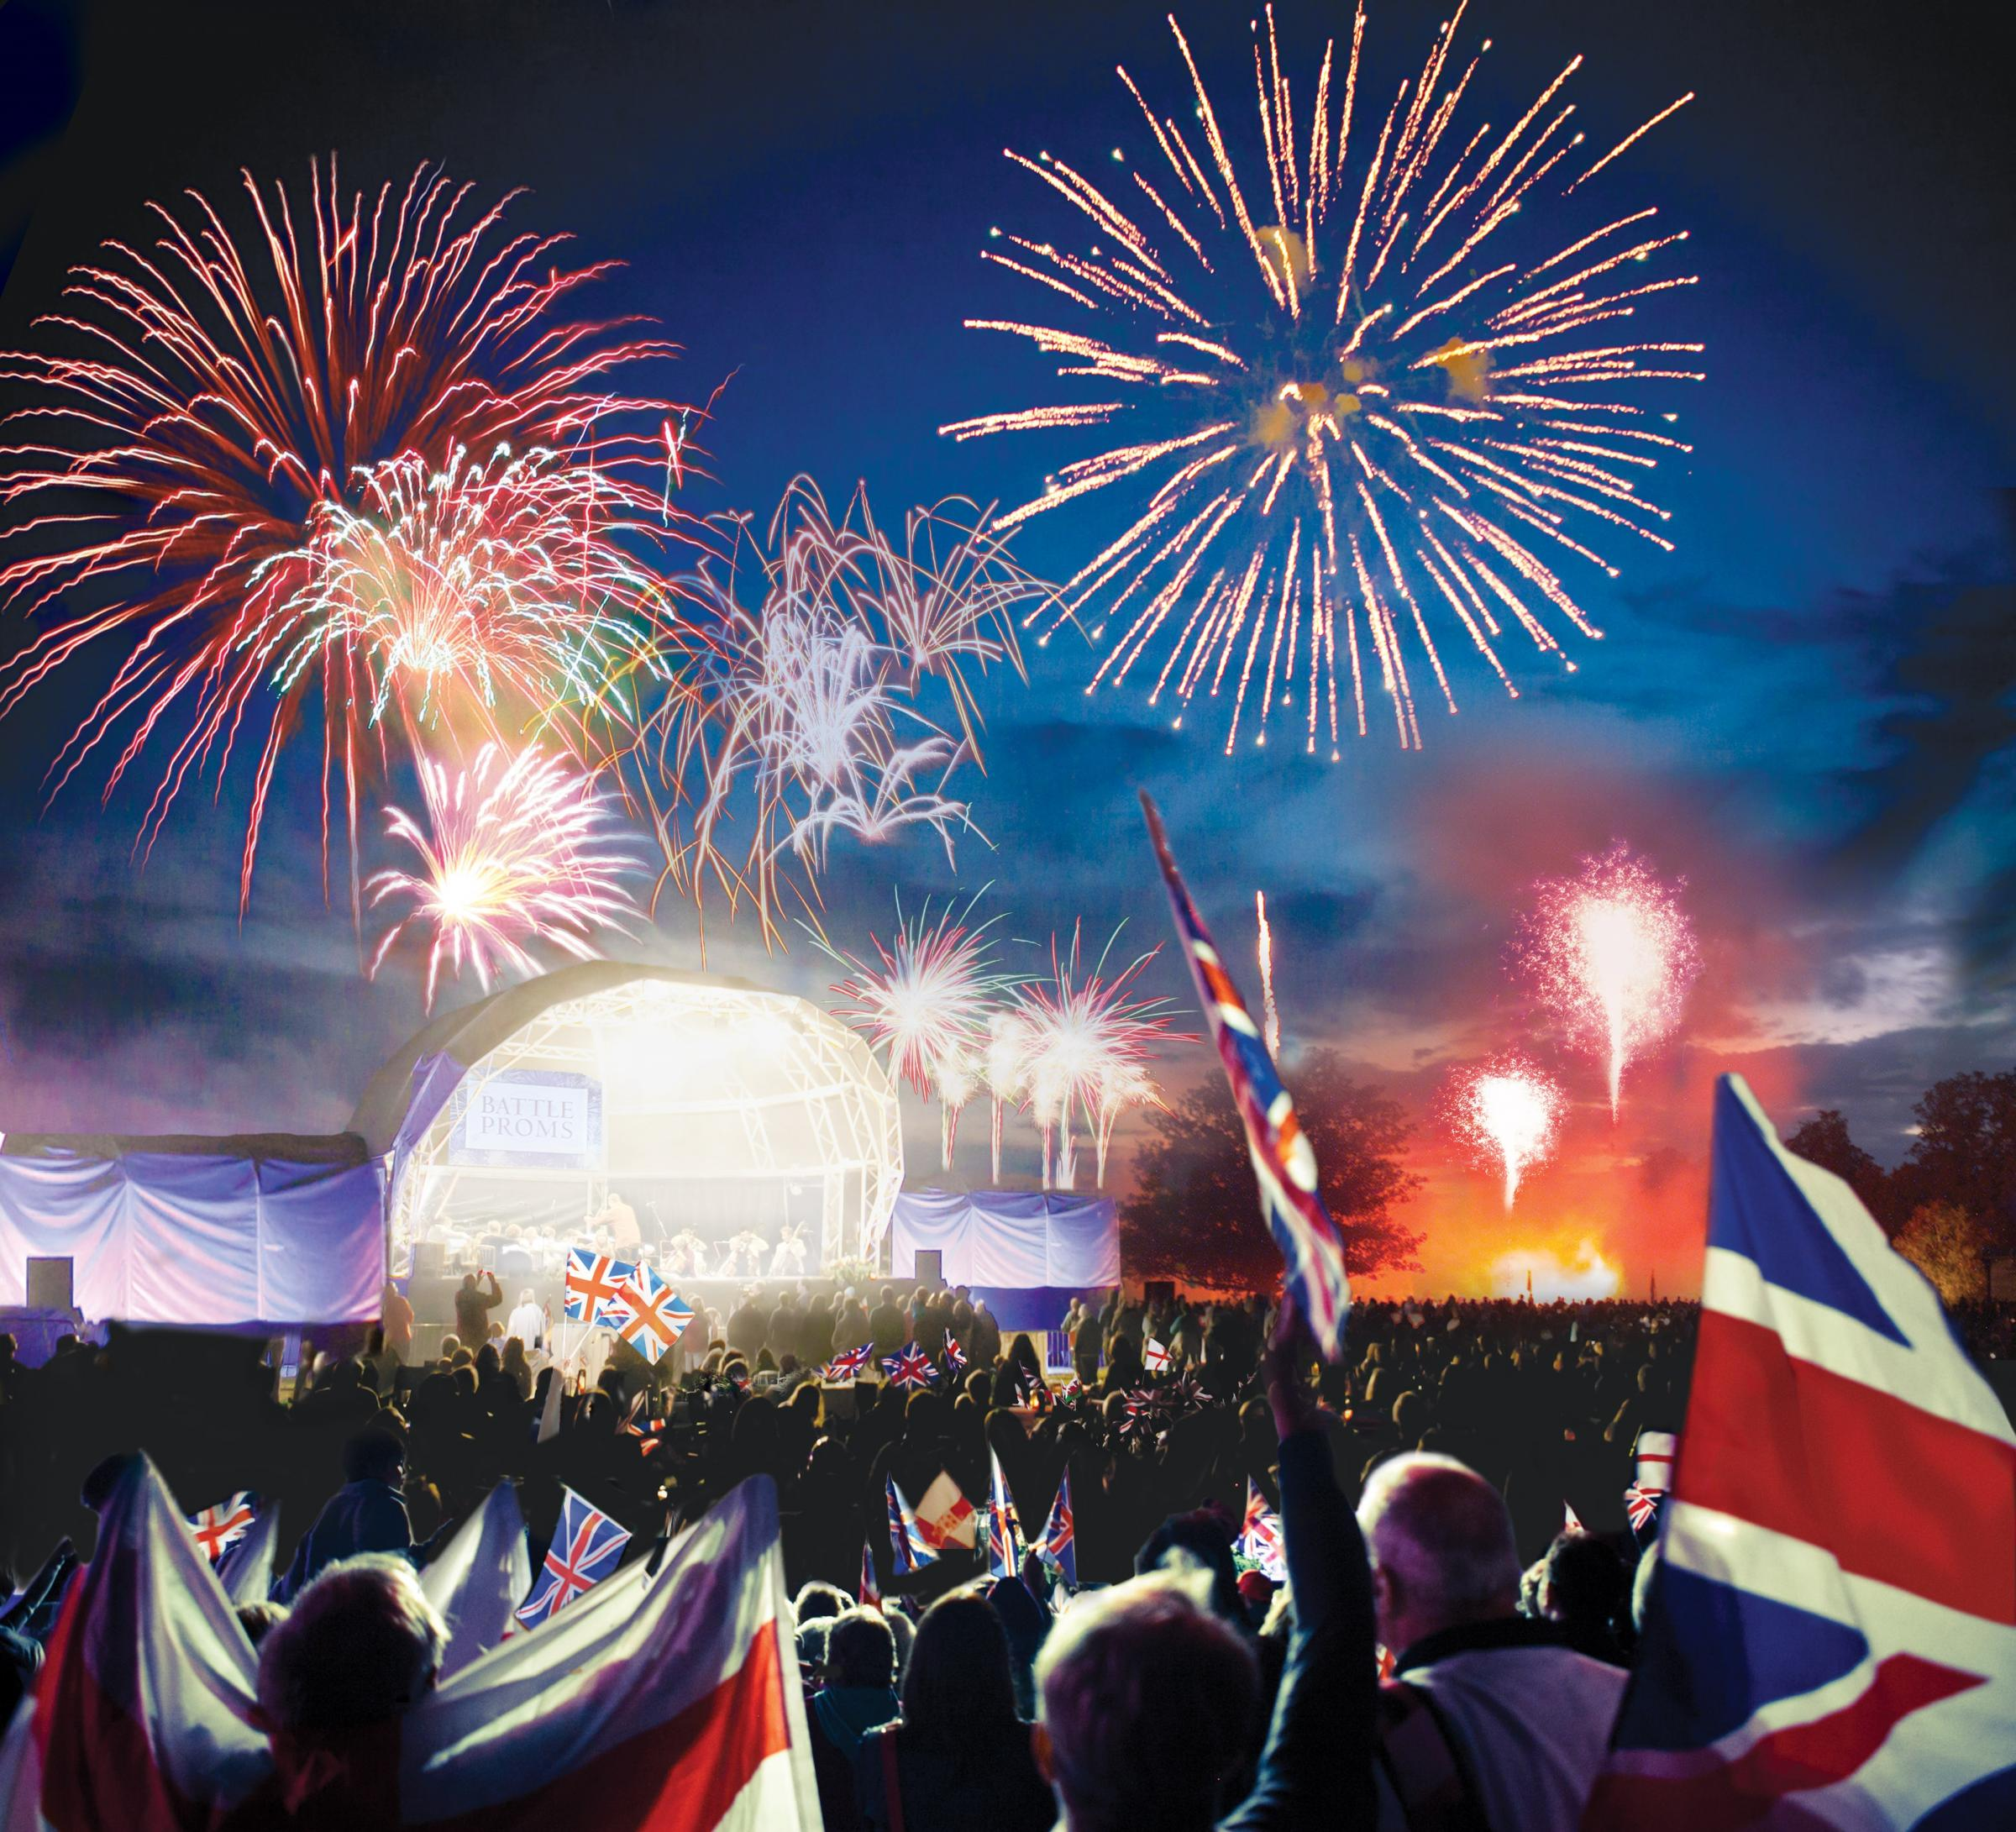 Battle Proms Picnic Concert